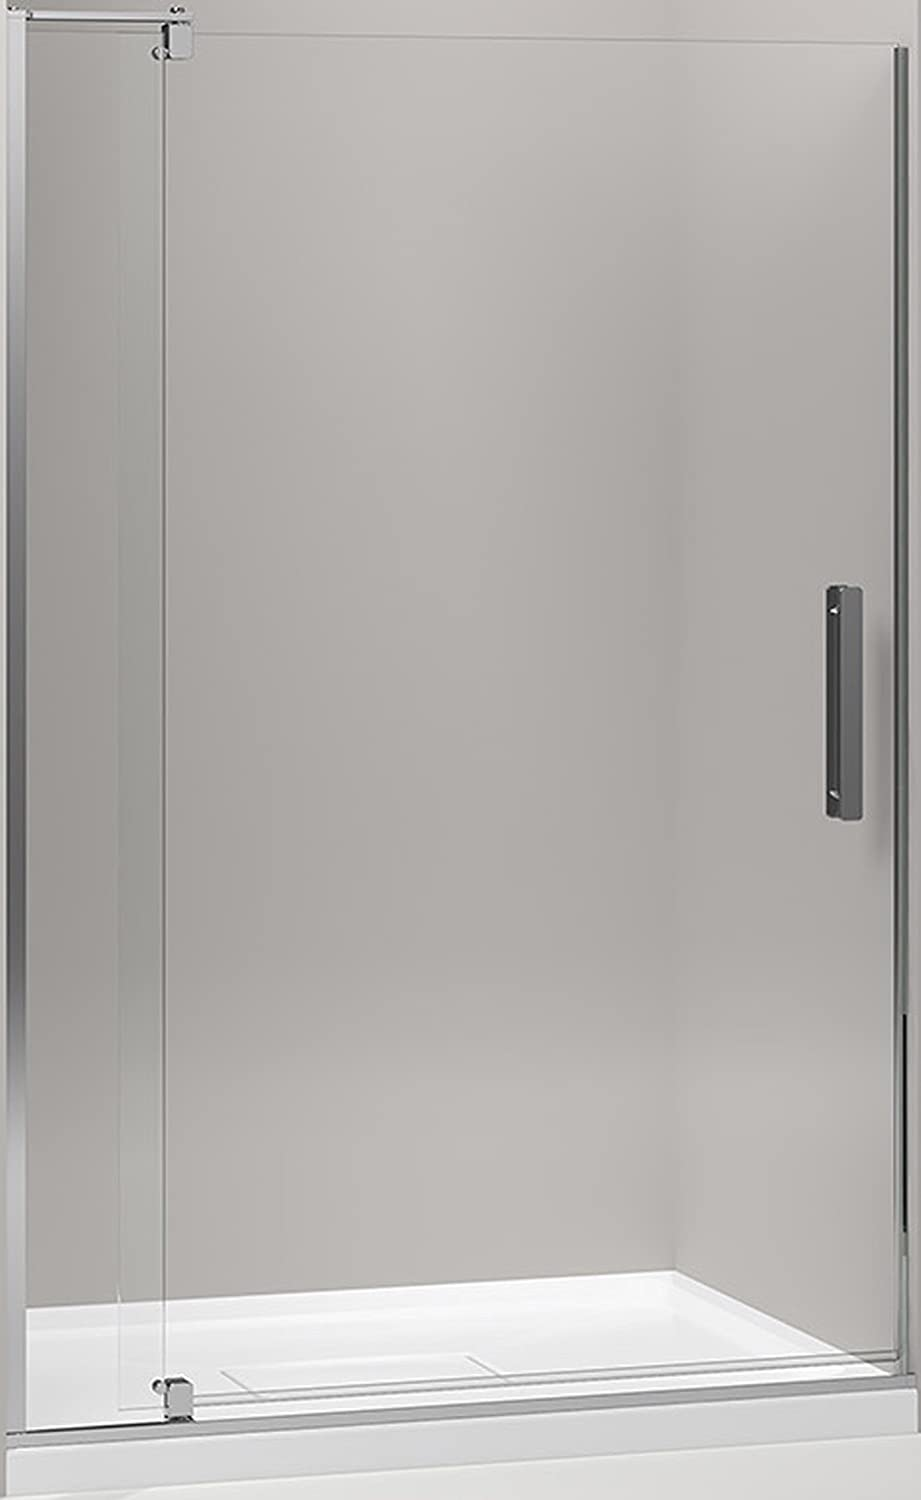 Kohler k 707551 l shp revel pivot shower door with 516 thick kohler k 707551 l shp revel pivot shower door with 516 thick crystal clear glass 70 x 43 18 x 48 bright polished silver amazon vtopaller Gallery